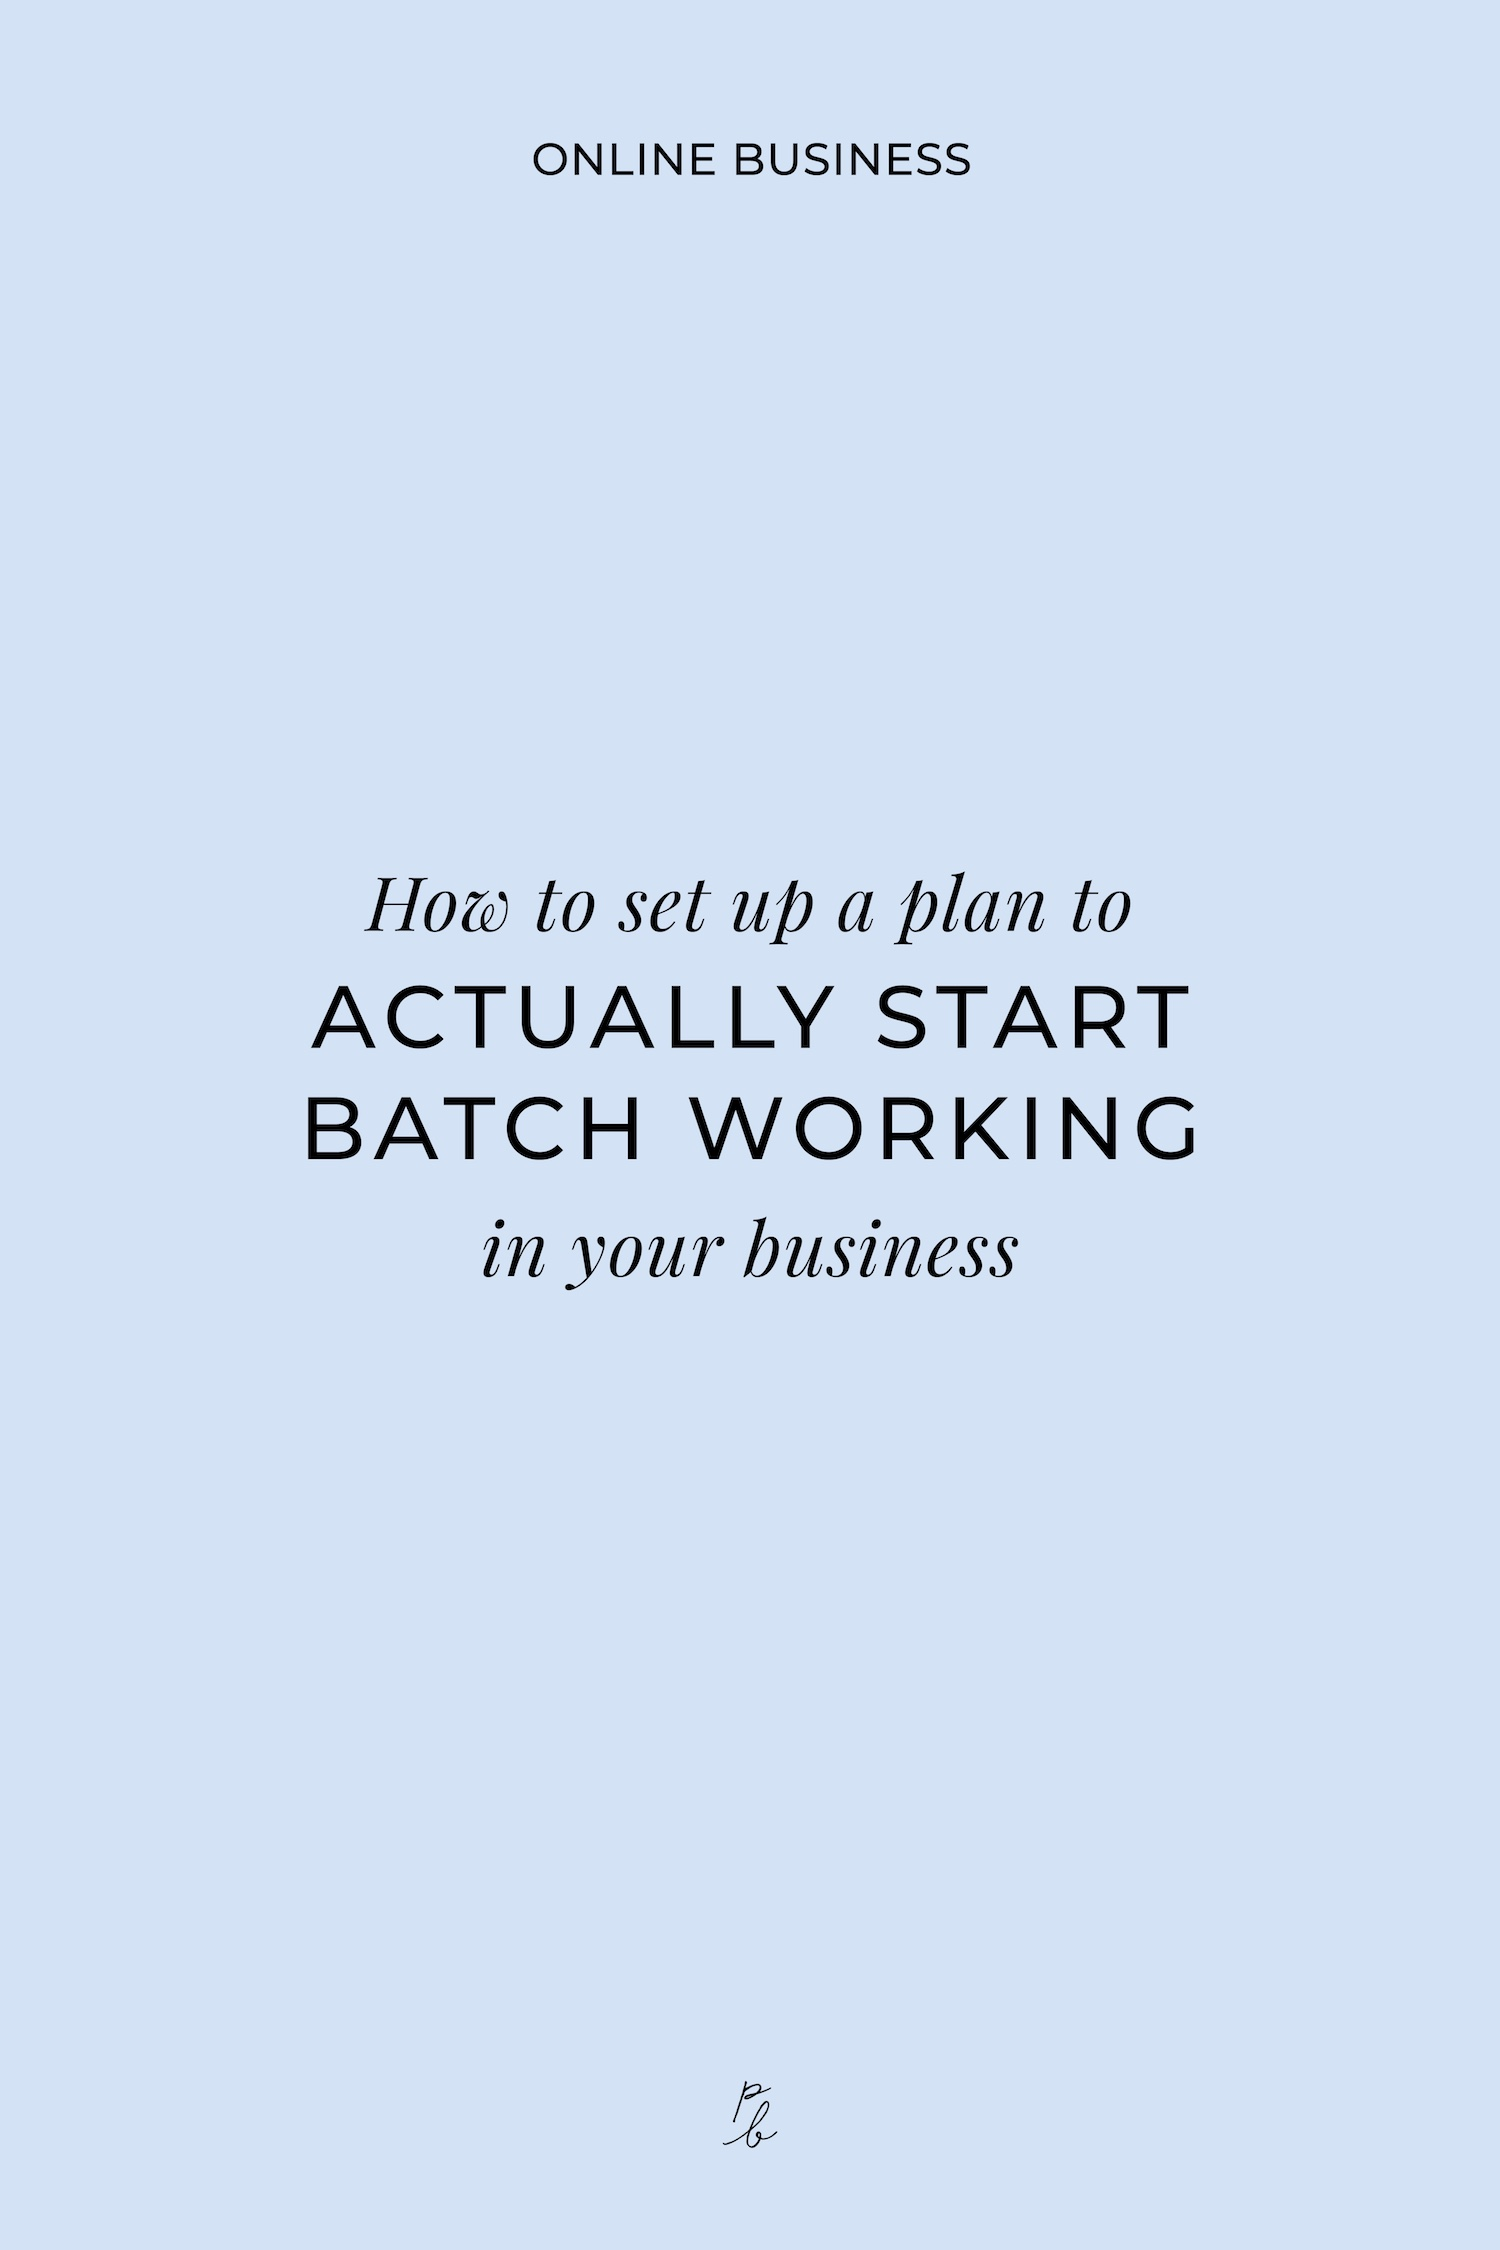 How to set up a plan to actually start batch working in your business 1.jpeg